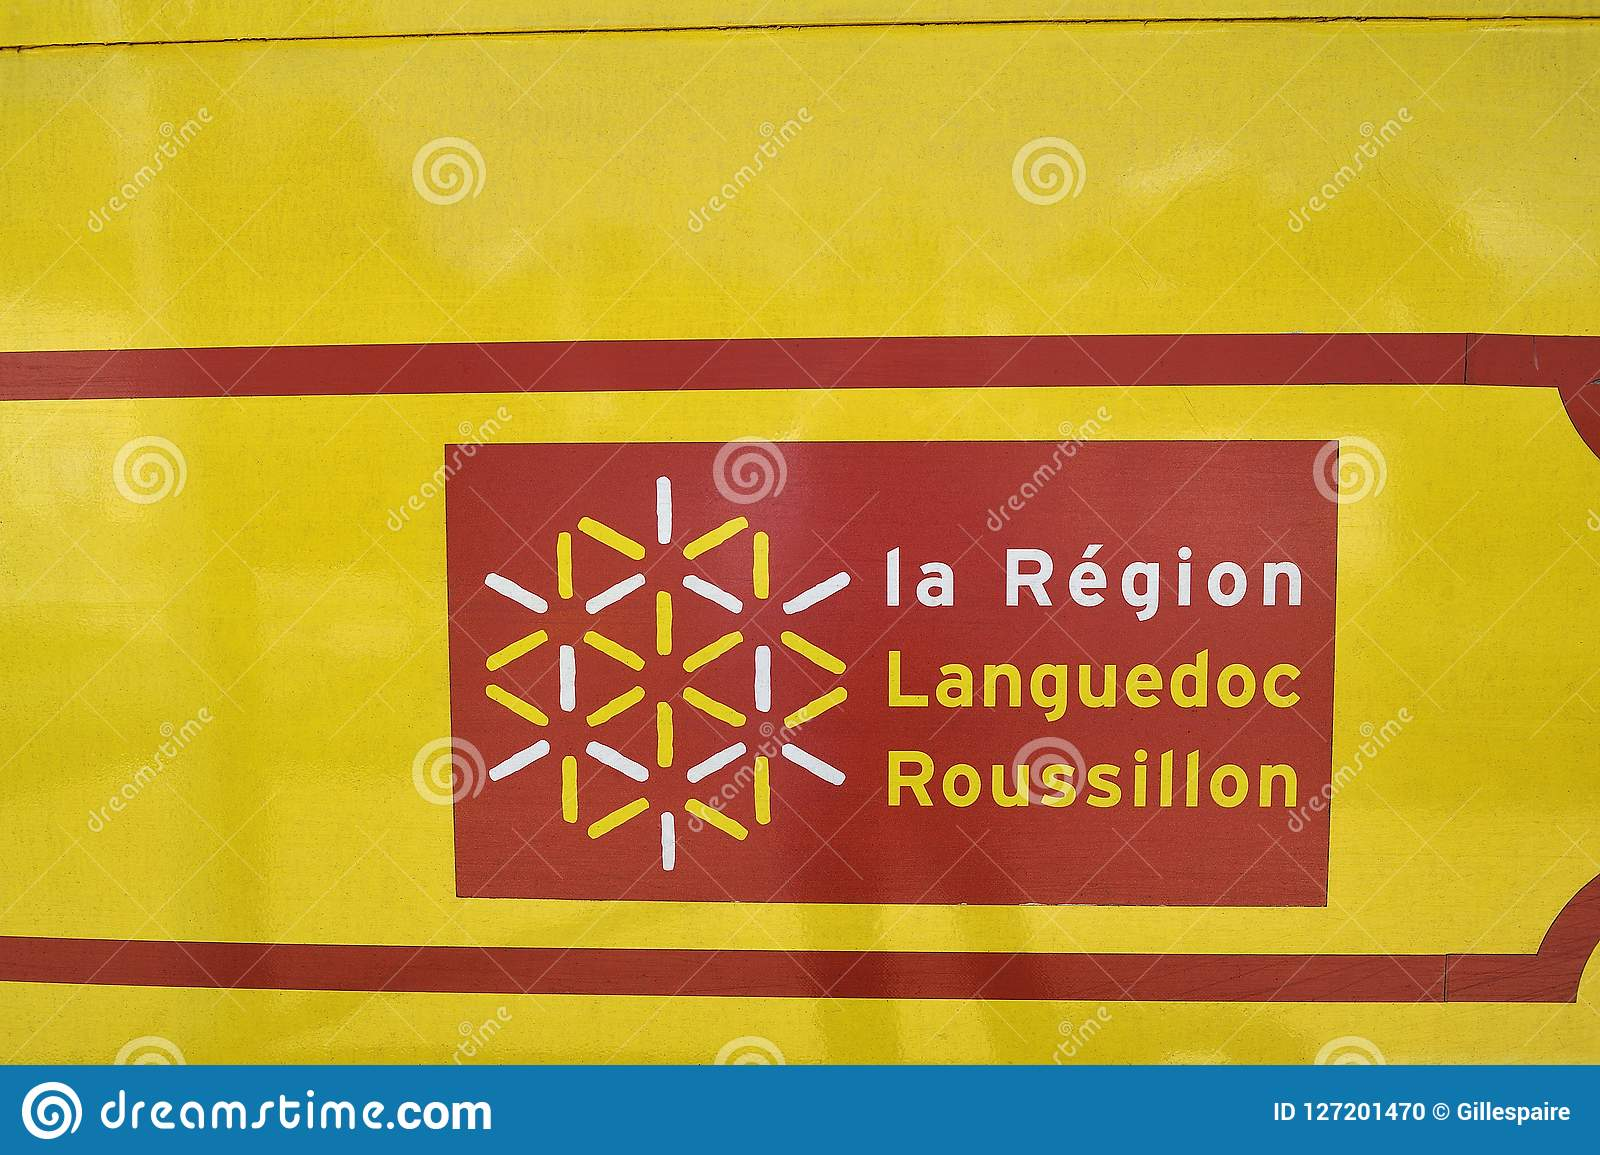 Languedoc Roussillon Région The Logo Of The French Region Of Languedoc Roussillon Editorial